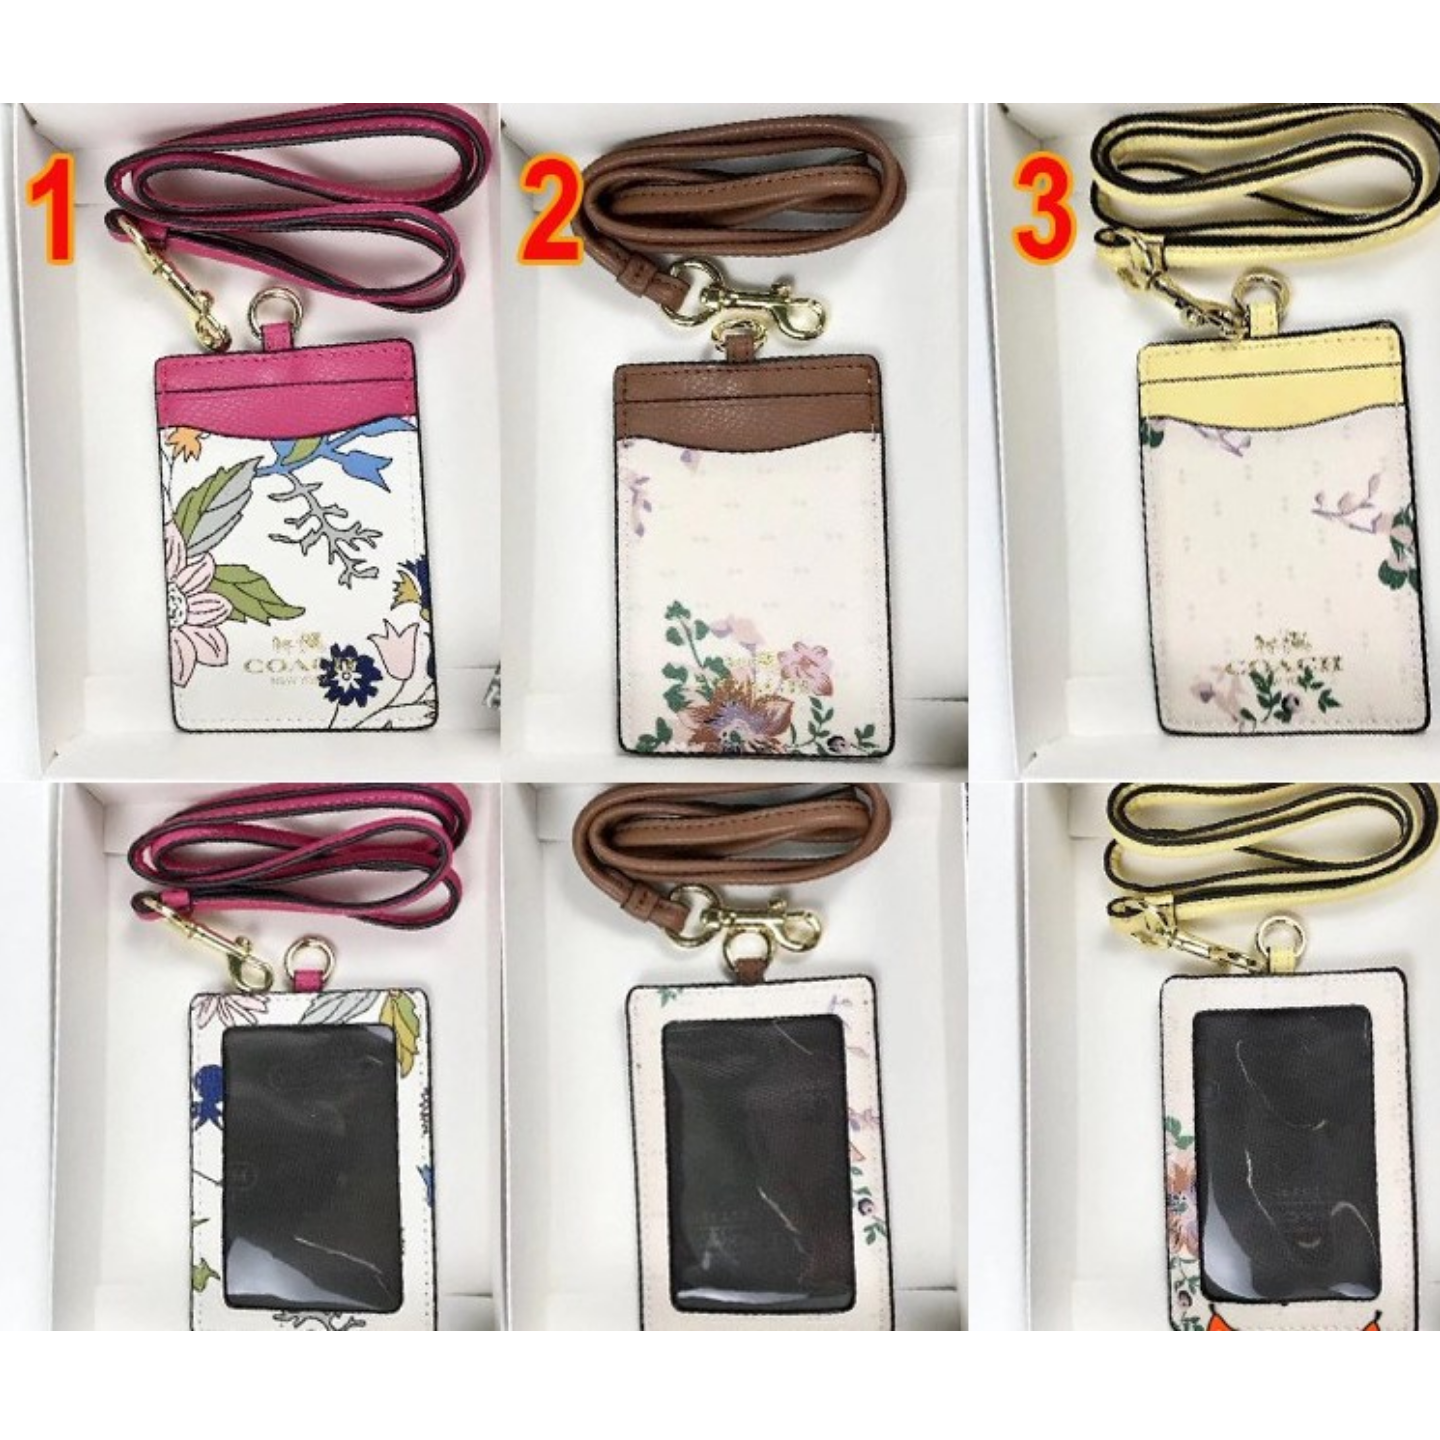 (SG COD)  Coach  (Limited time sale in 2020) Work permit card holder leather change card holder document holder with lanyard